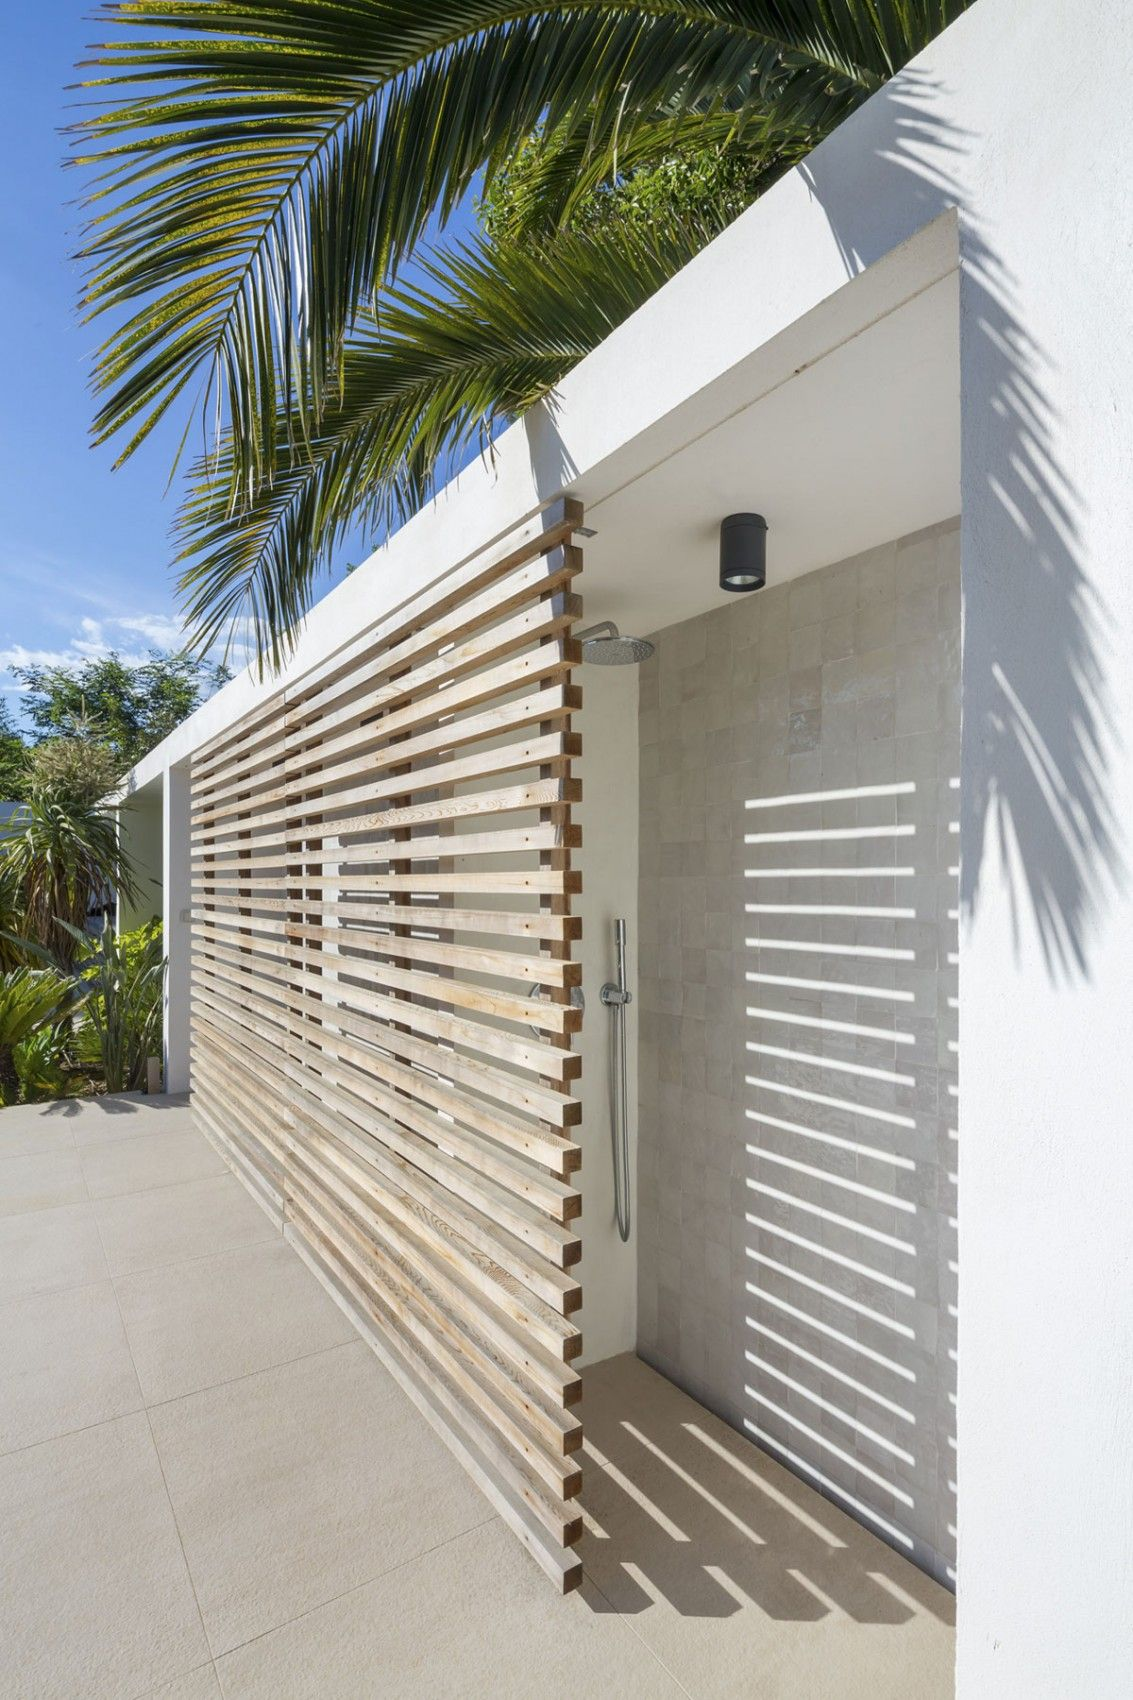 Cool Outdoor Shower Ideas For The Hot Summer Ahead